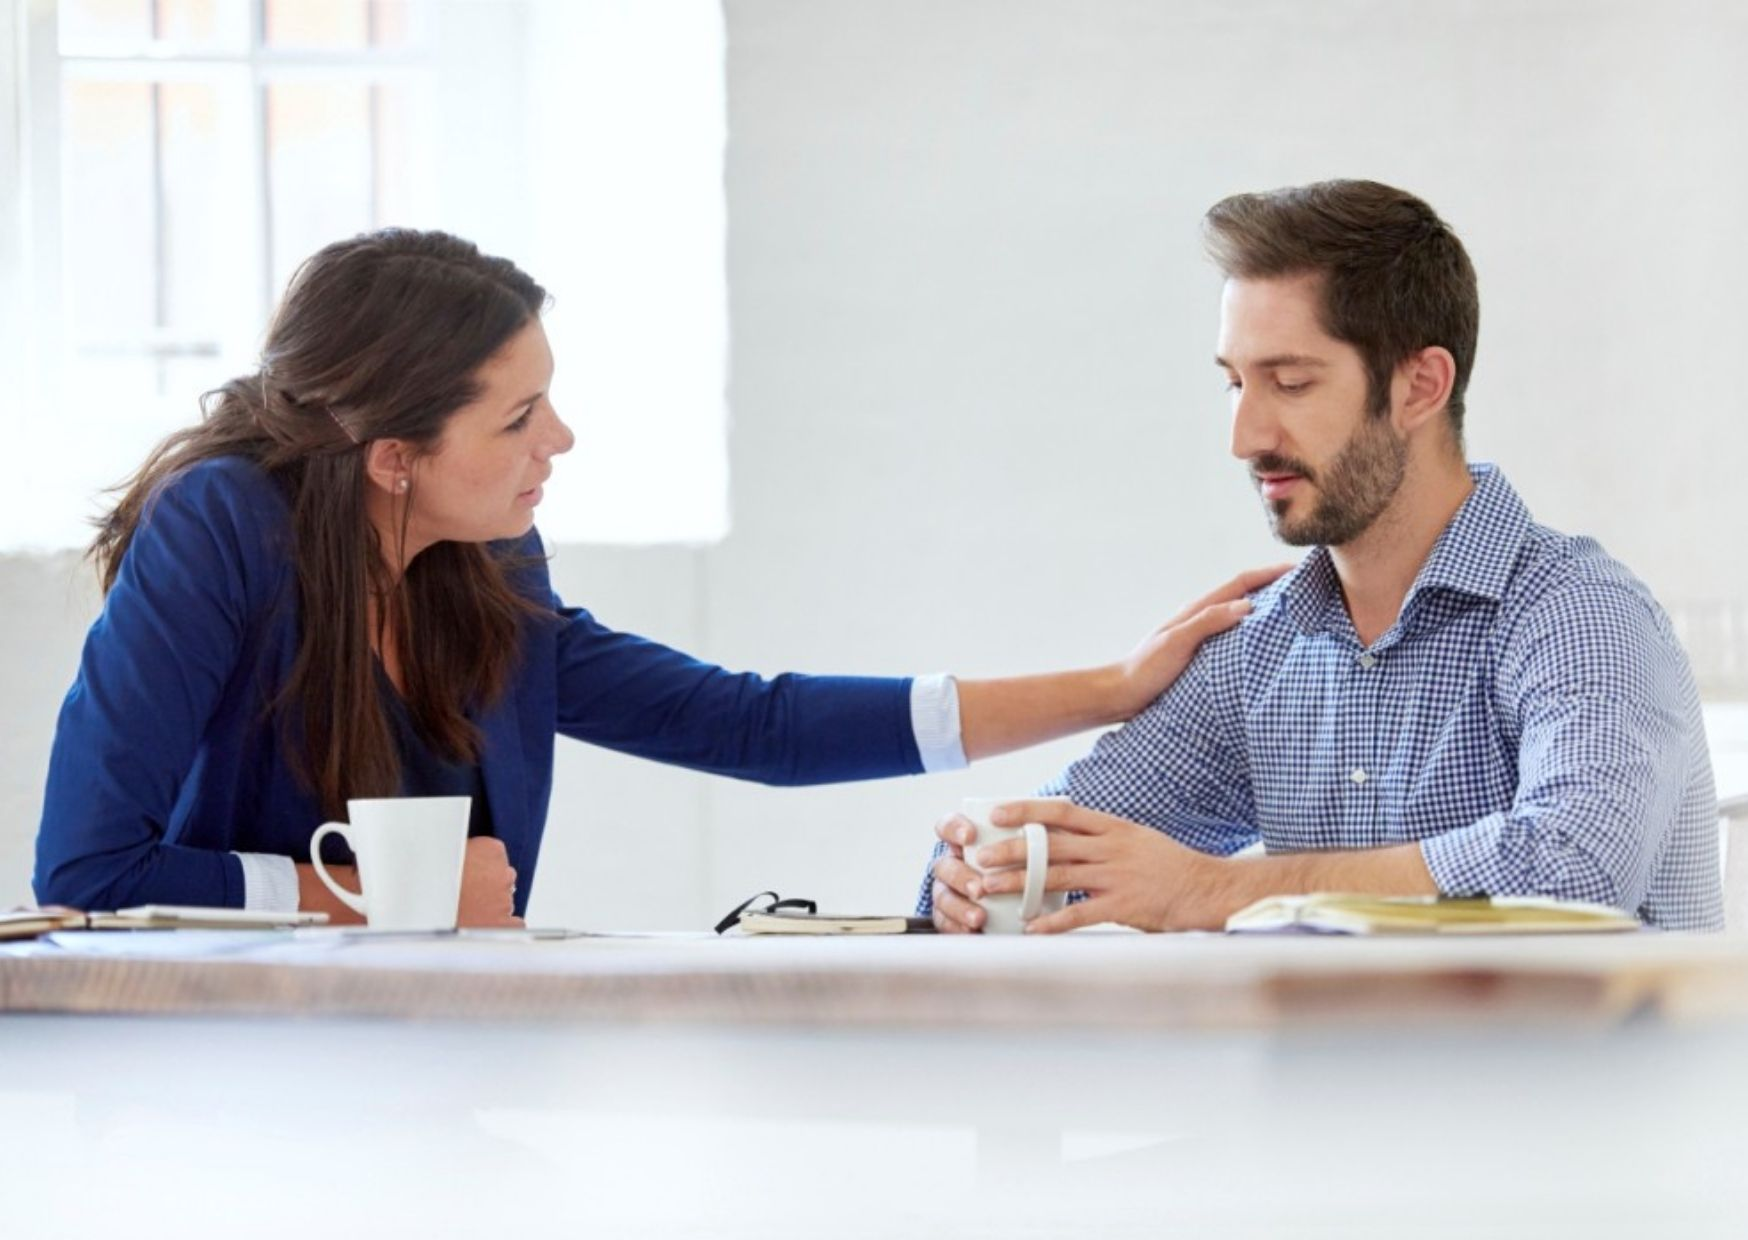 Understanding and emphasising your employees